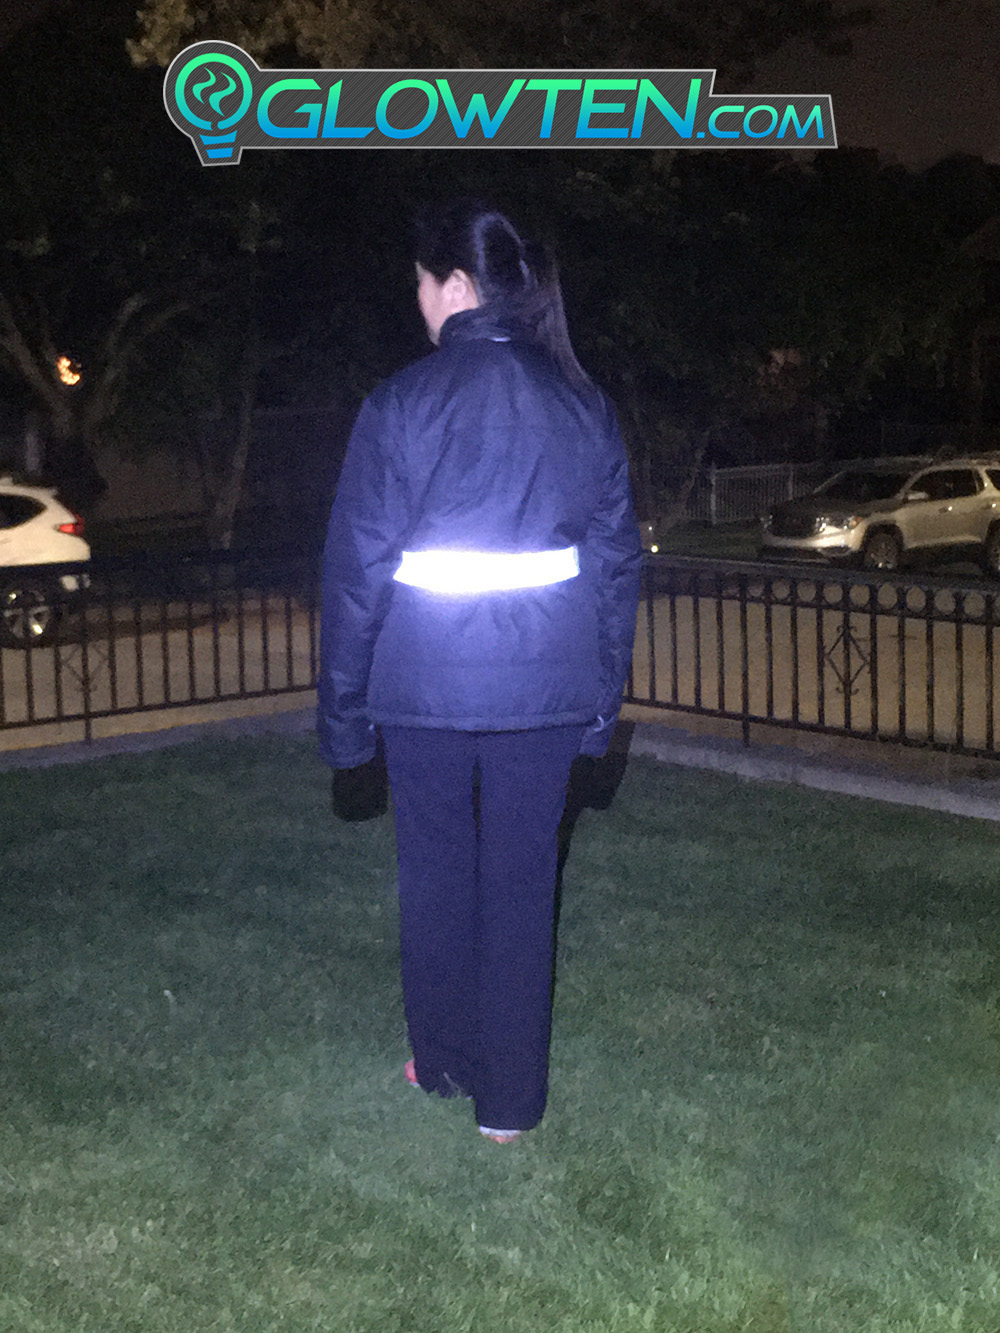 GLOWTEN.com - Reflective Tape For Clothing Reflective Luminous Band See Better At Night Safety High-Visibility Reflector Band Tape Armband For Reflective Clothing picture photo cap preview pic image search 4